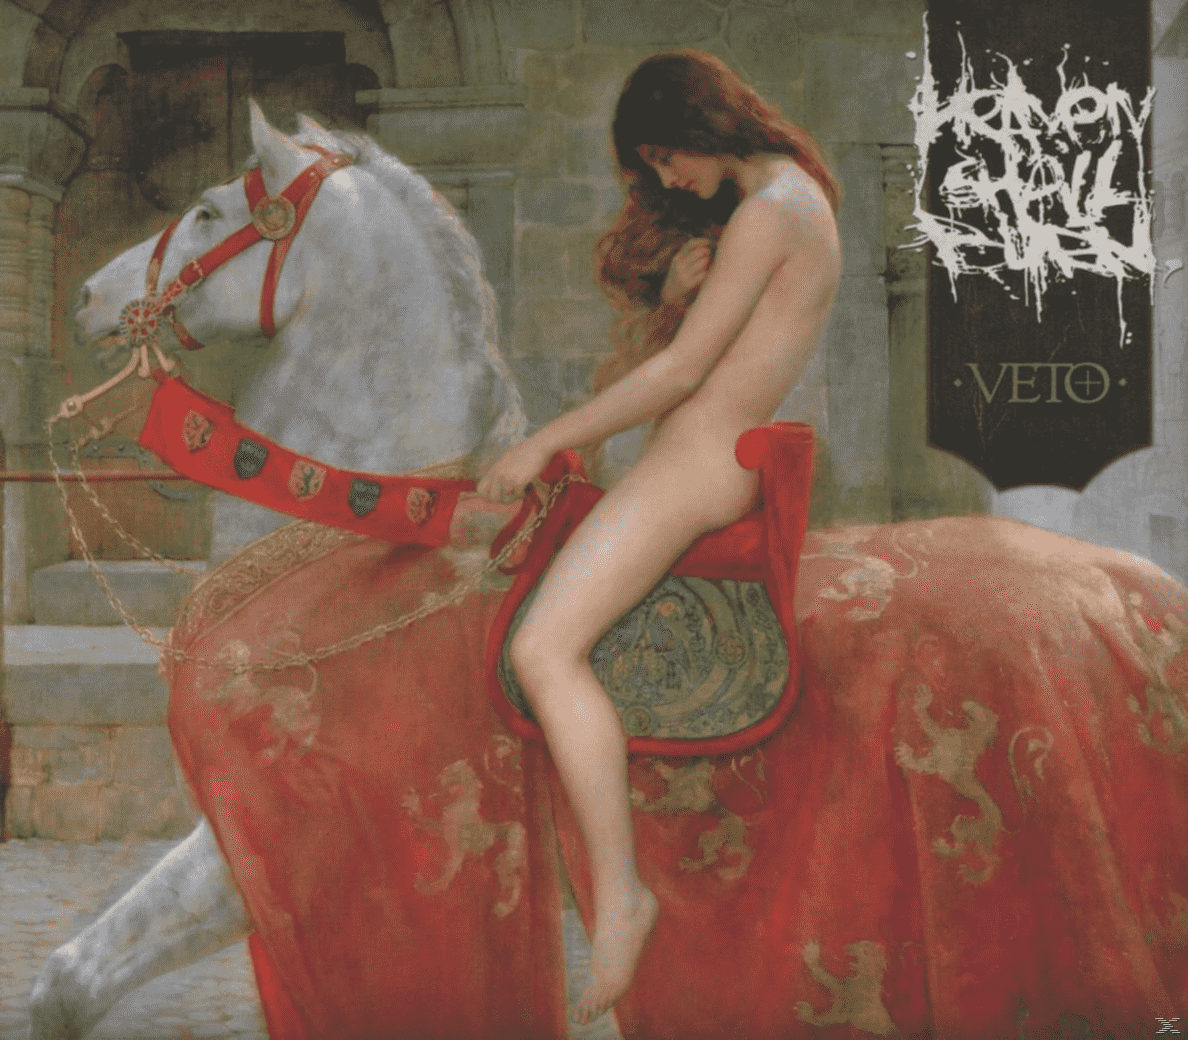 Veto (Limited Edition) Heaven Shall Burn auf CD + Bonus-CD